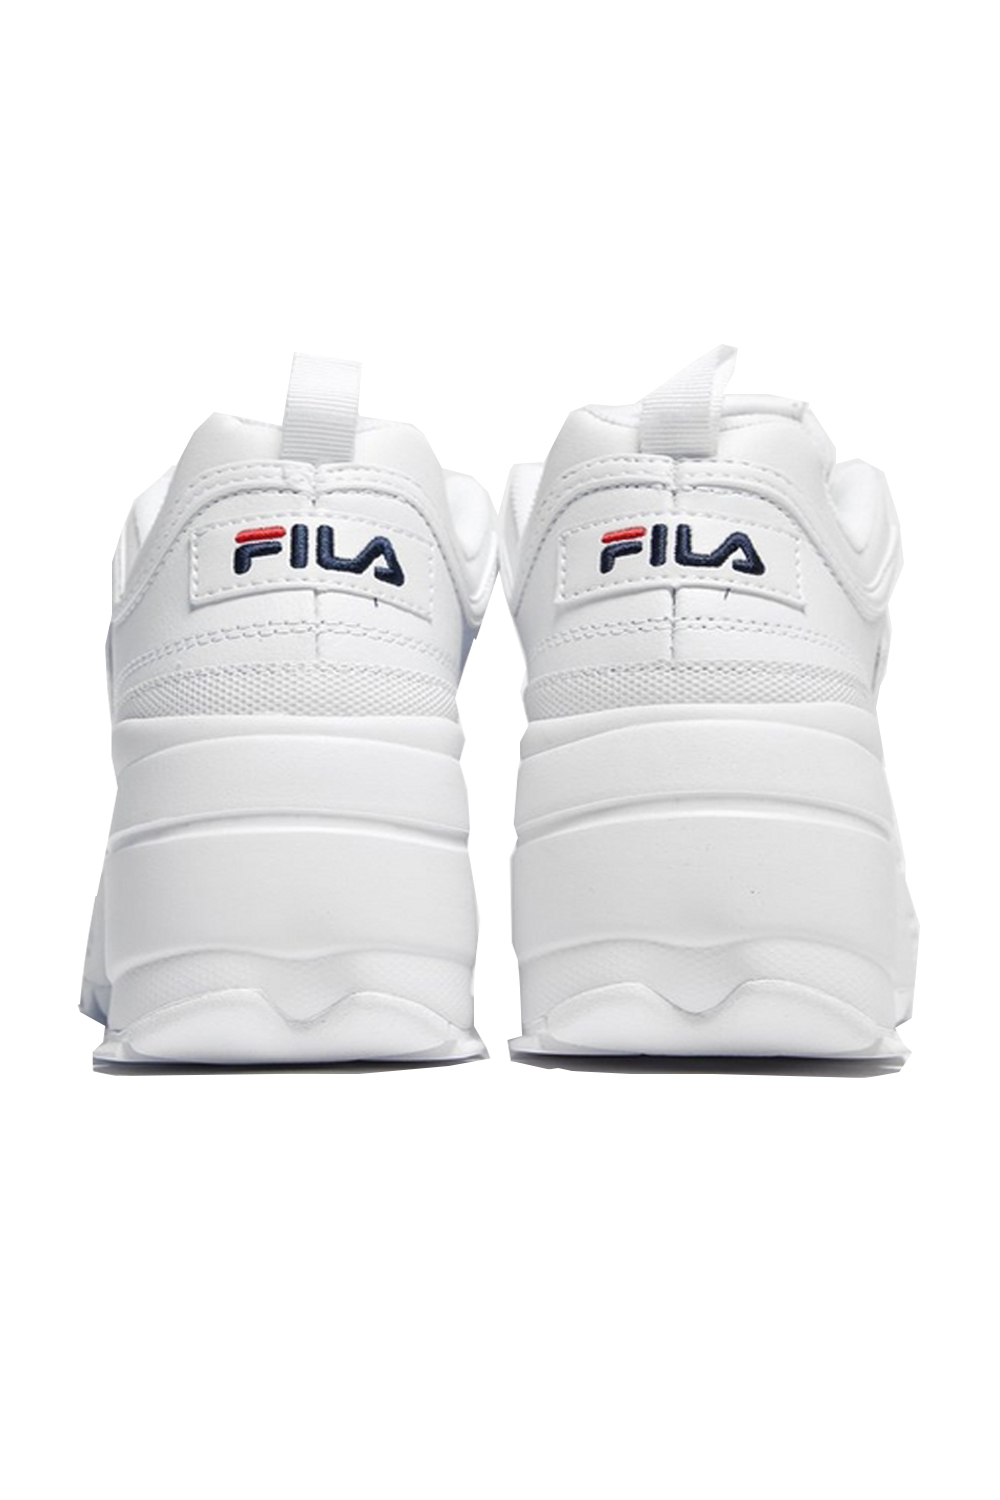 Fila-Disruptor-ll-Wedge-Womens-White-Trainers-Casual-Platform-Chunky-Heel-Shoes thumbnail 5